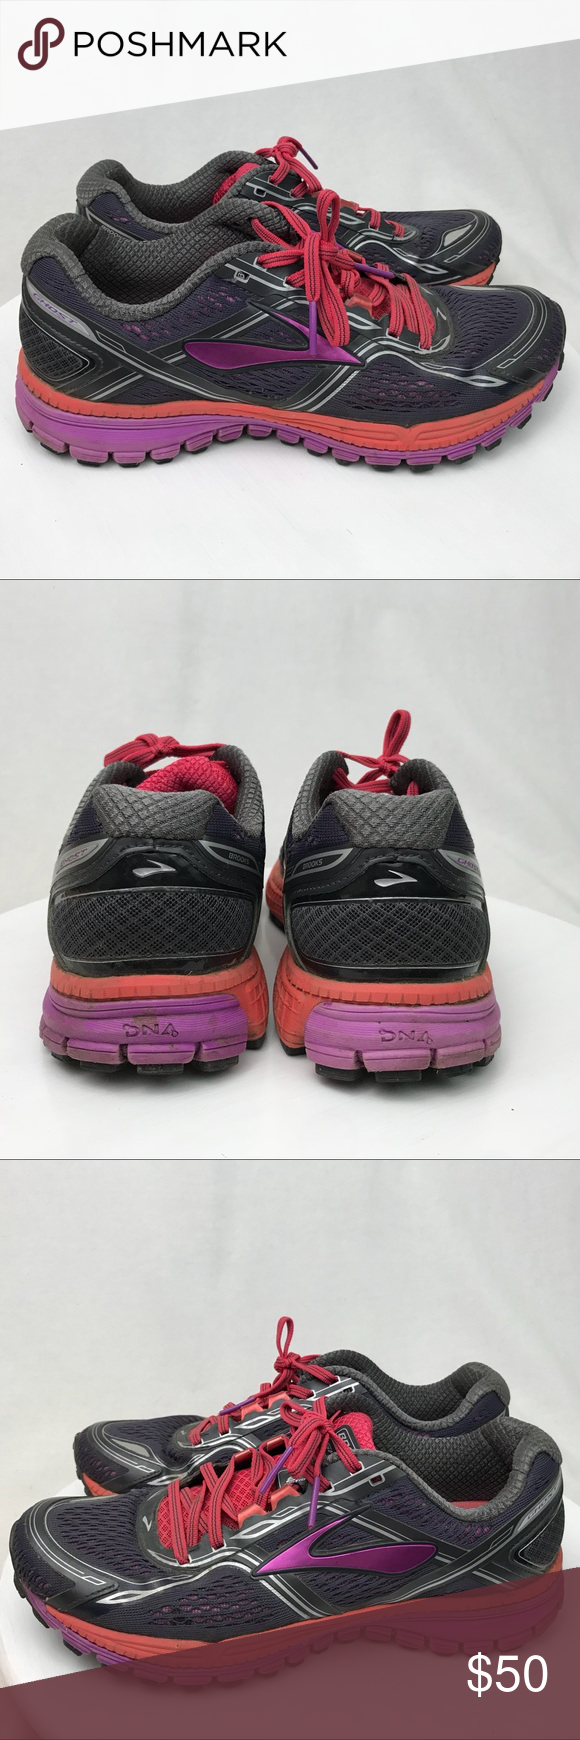 f564d07ae1d Brooks Ghost 8 Womens Running Athletic Shoe 9.5 Very Good Pre-Loved  Condition! The